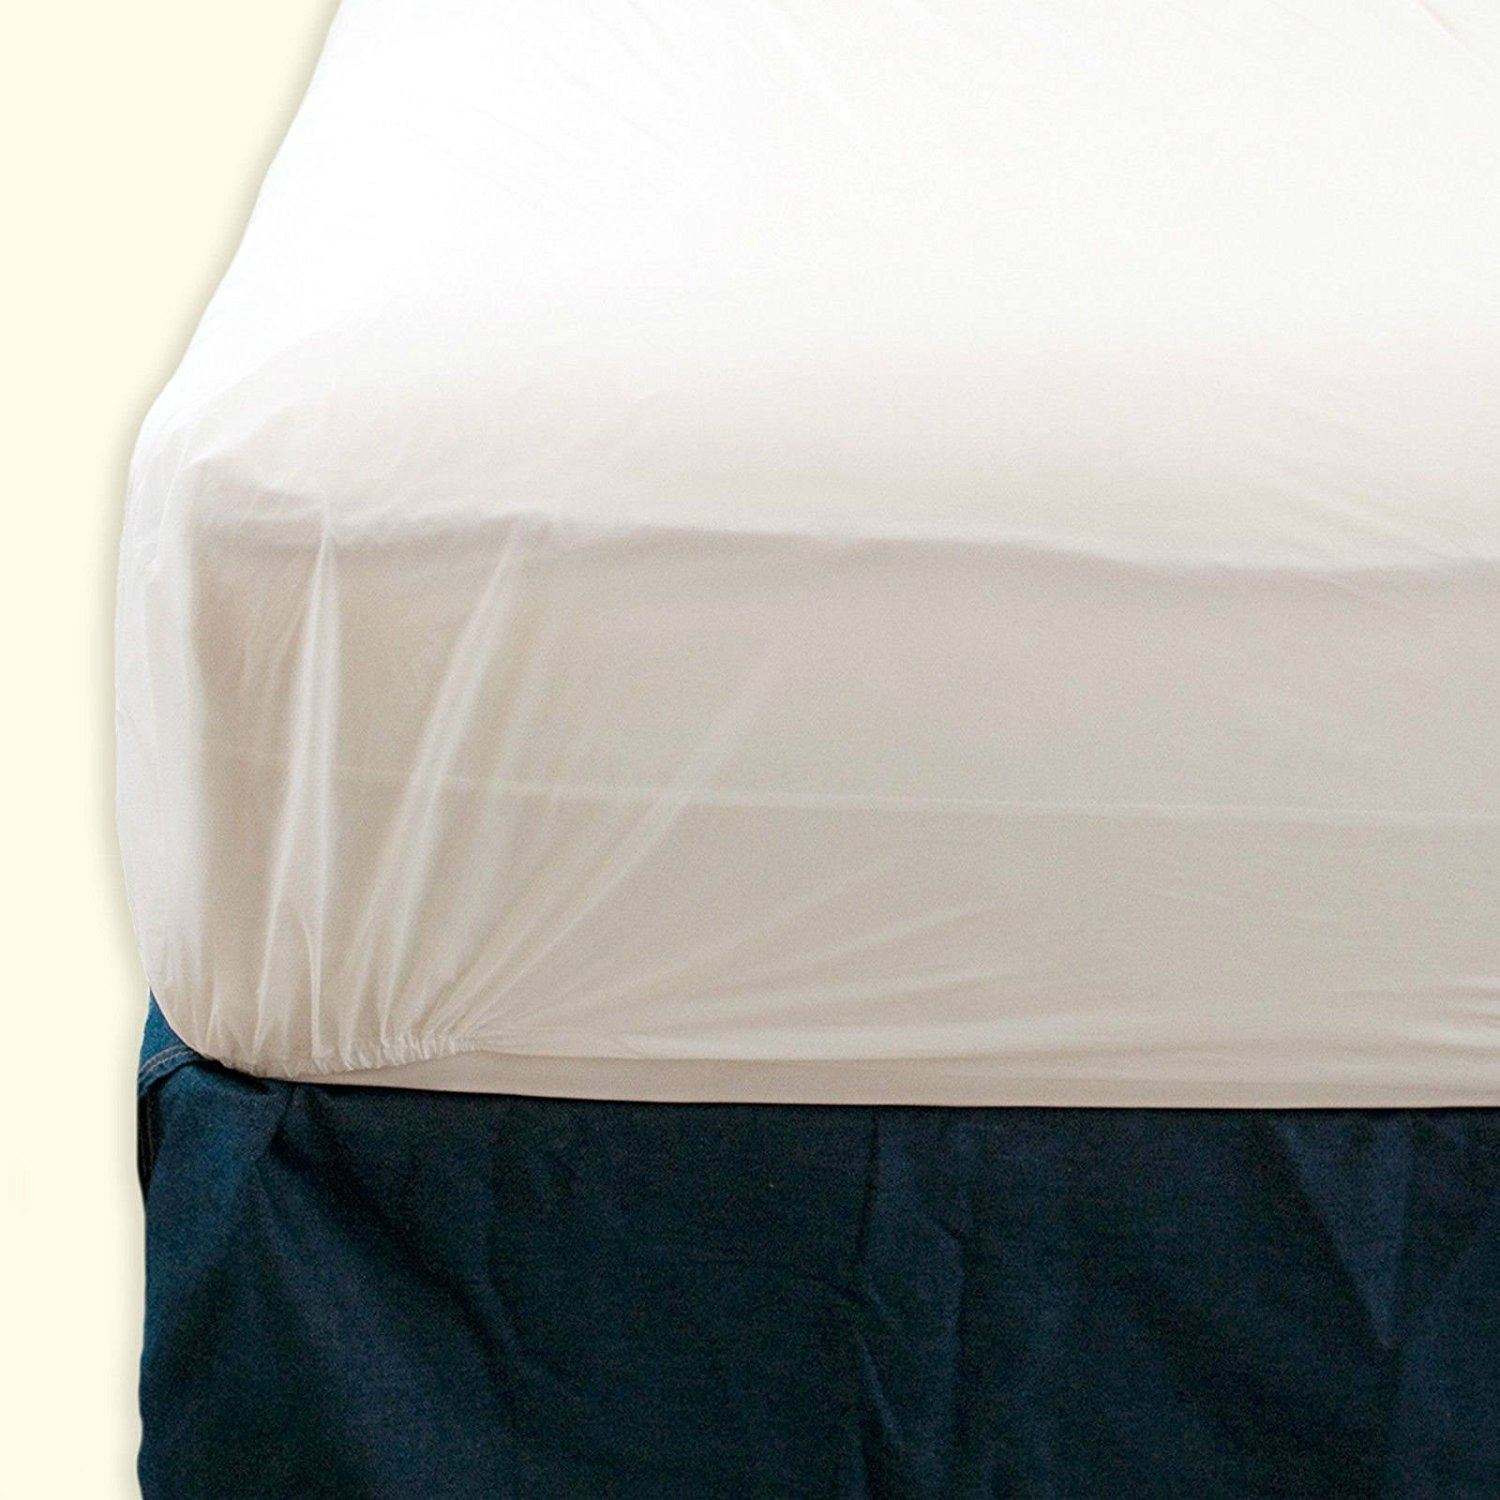 Plastic Mattress New Plastic Mattress Protector Bed Wetting Sheet Cover